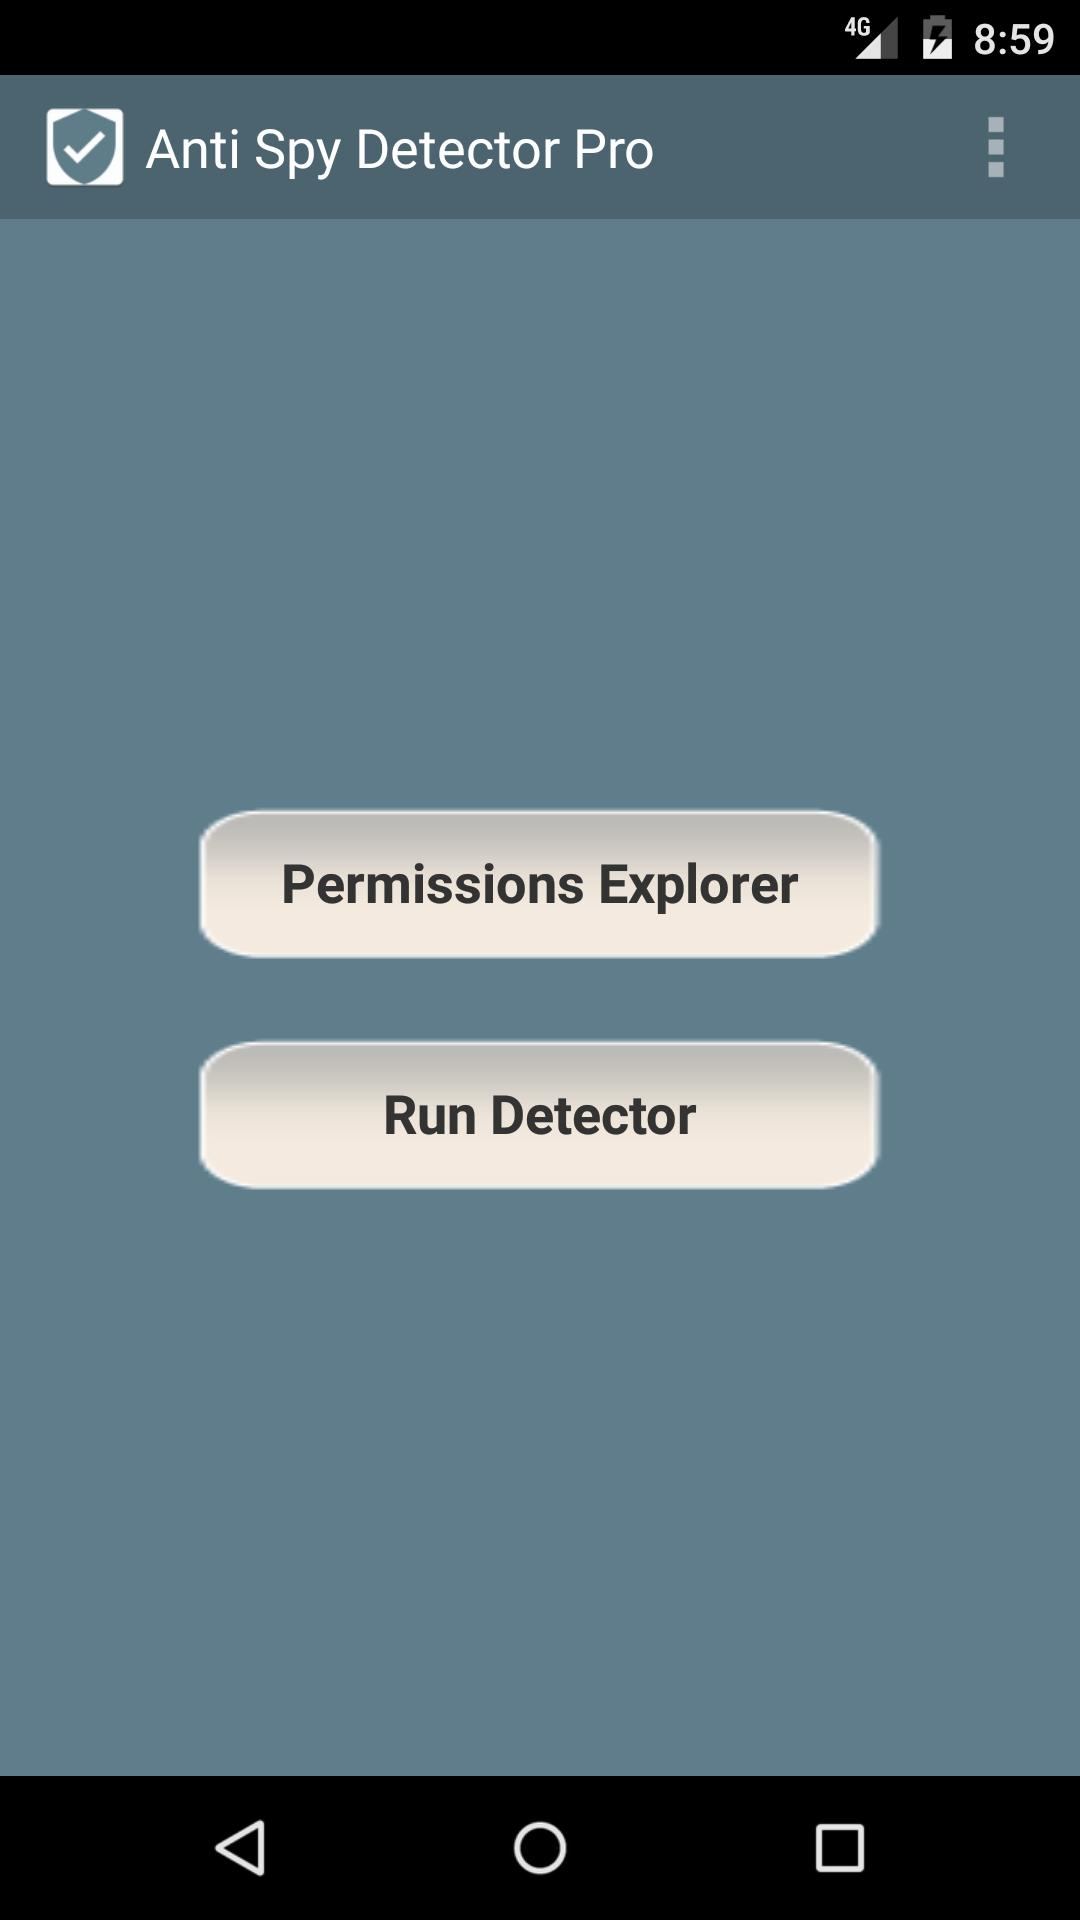 Anti Spy Detector Pro for Android - APK Download